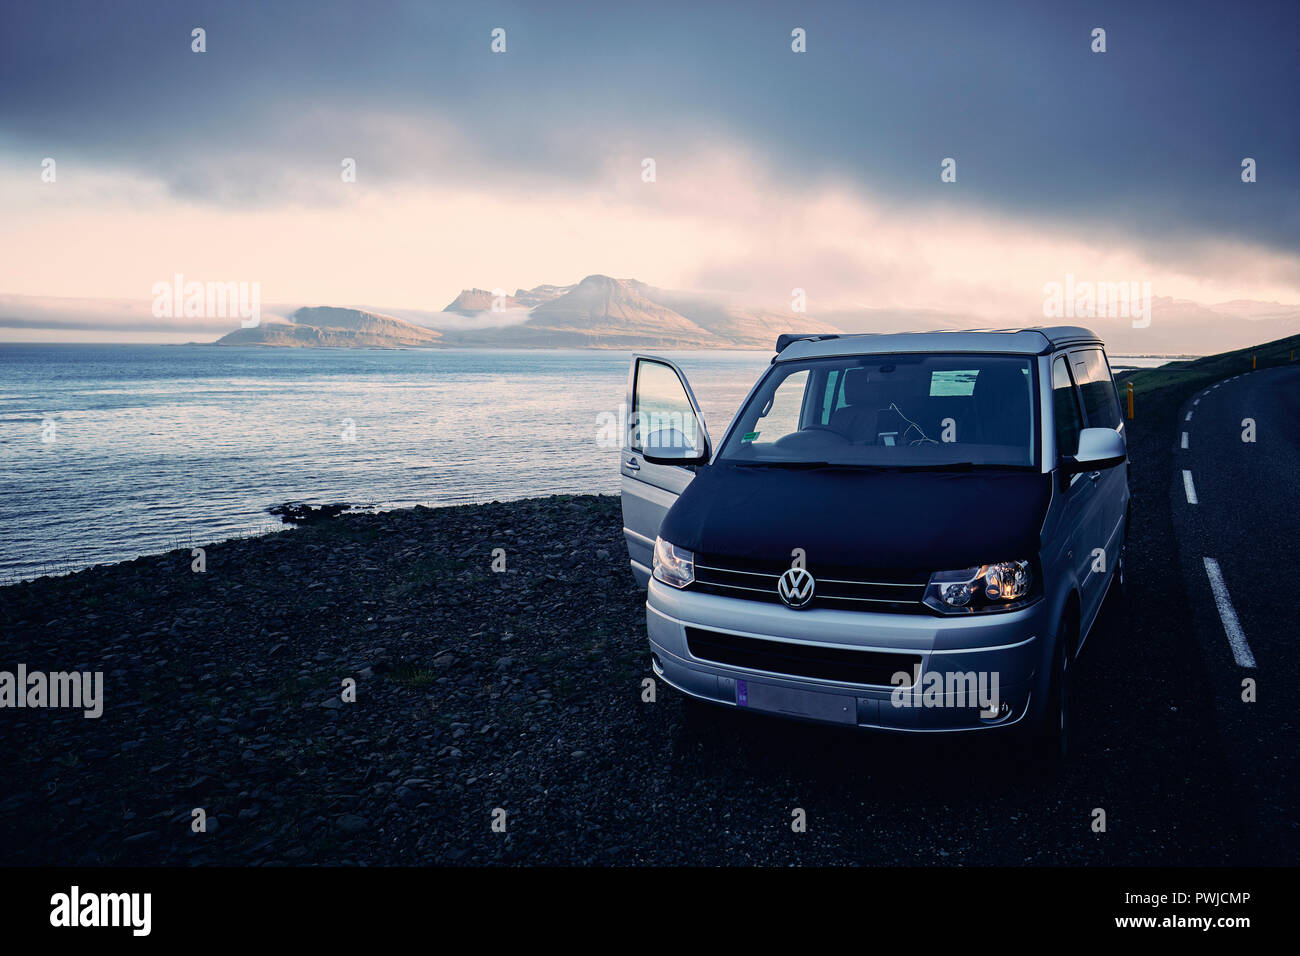 A VW California T5 camper van traveling the Iceland coastal road in south east Iceland.. - Stock Image